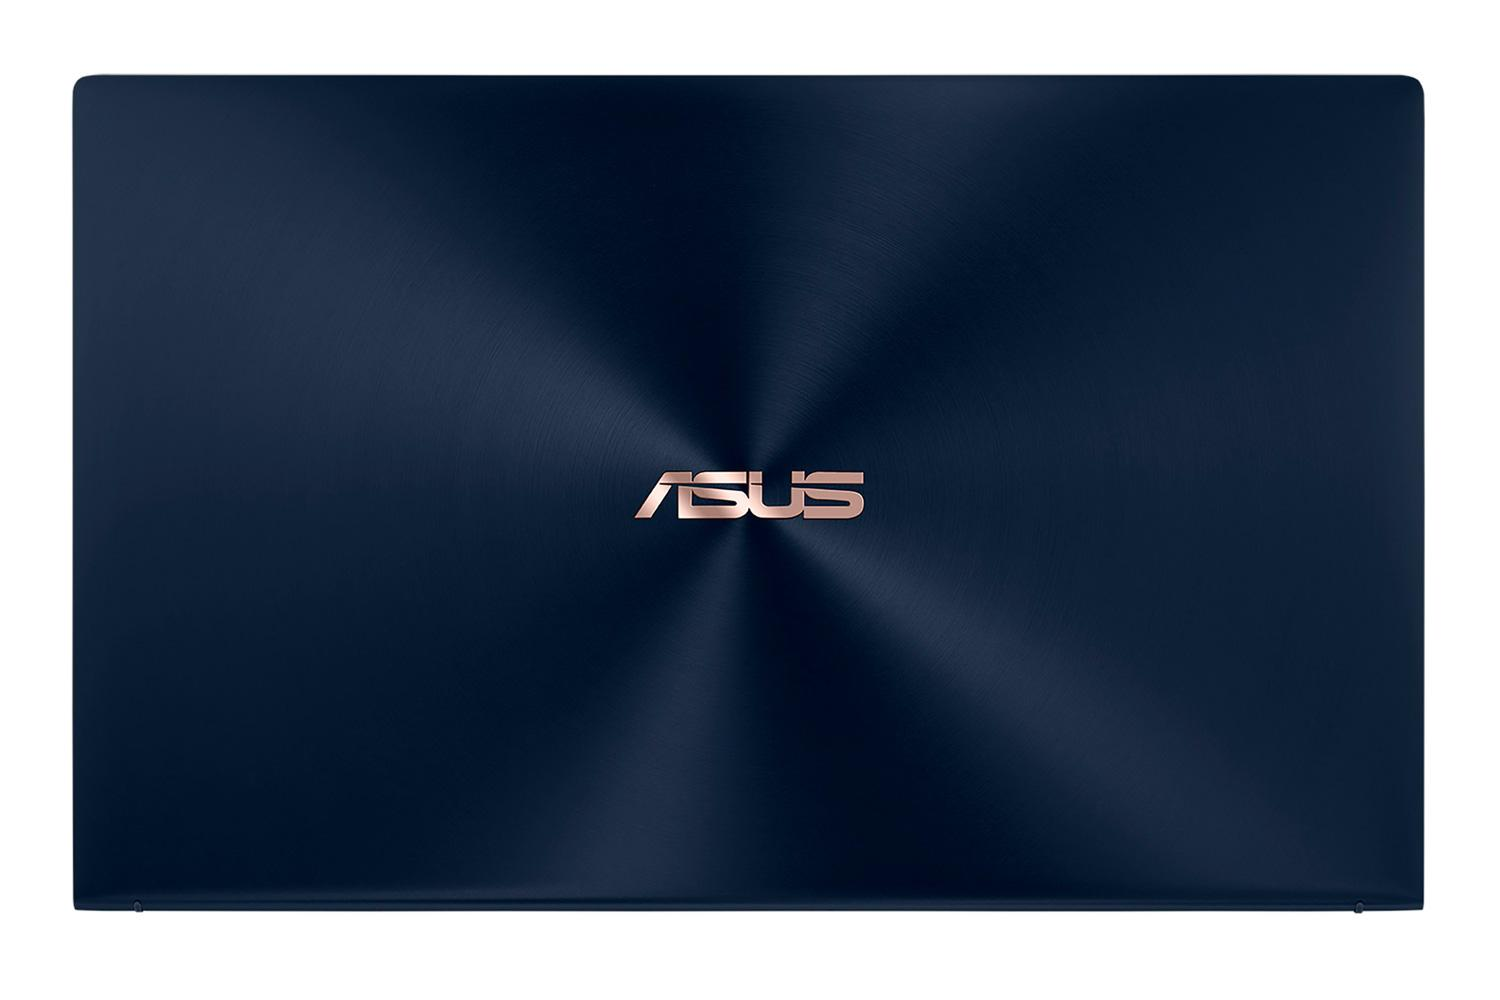 Ordinateur portable Asus ZenBook UX534FT-AA025R Bleu - 4K, GTX 1650 Max-Q, SSD 1 To, ScreenPad - photo 6